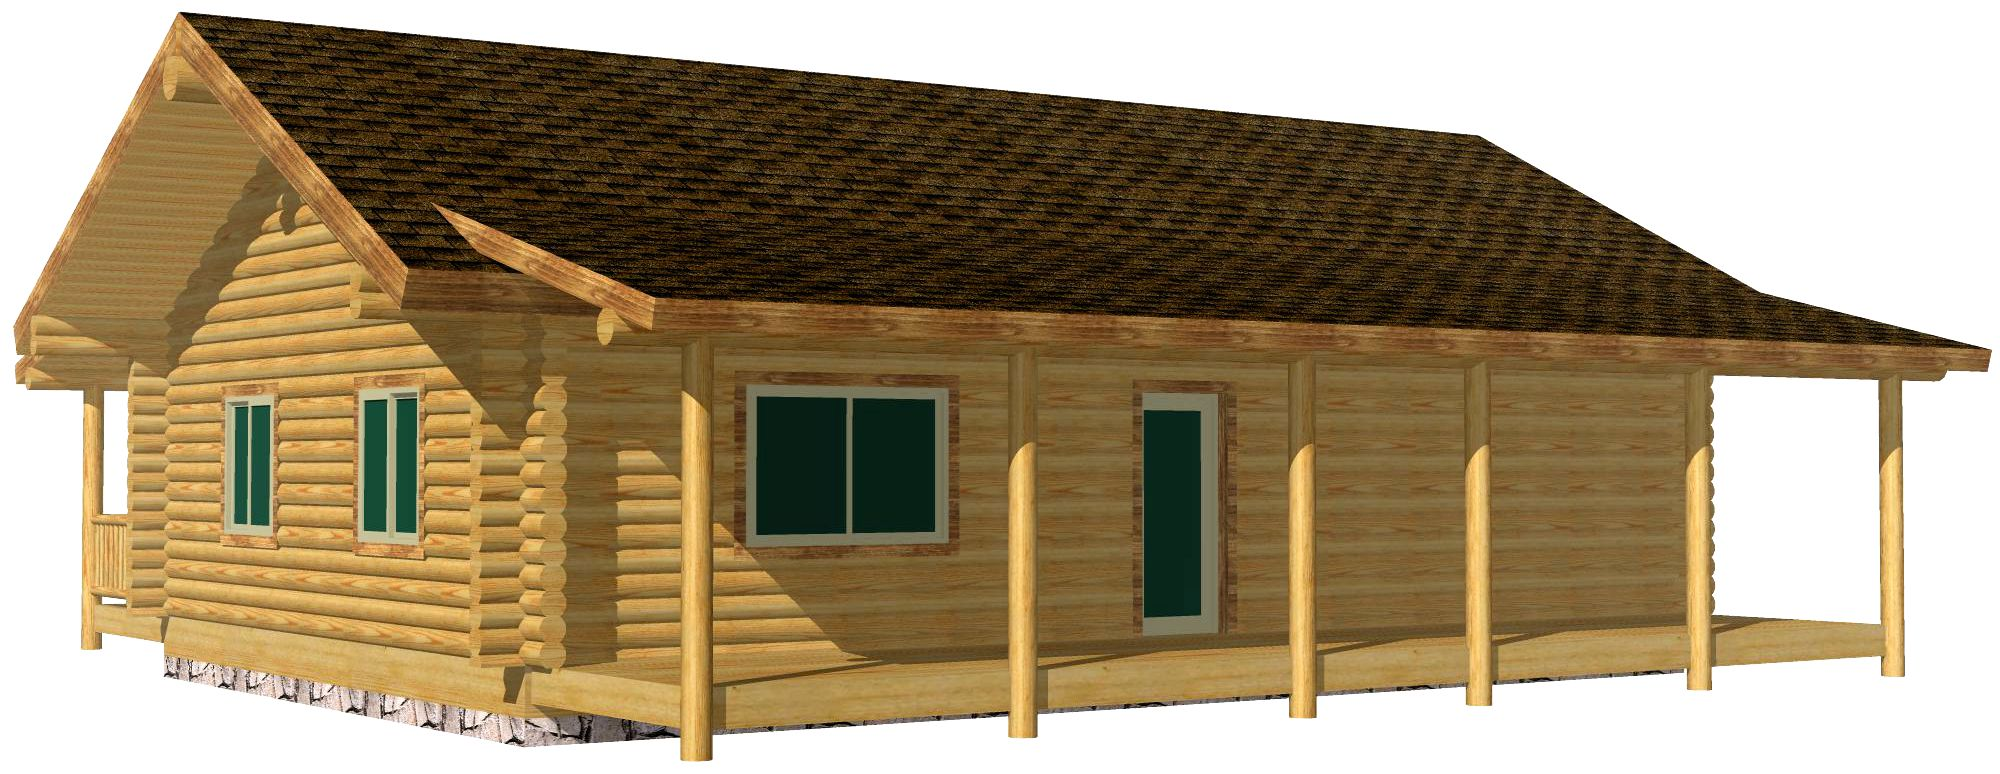 26x40 Eagle Creek smaller log cabin design with full length porch North Dakota